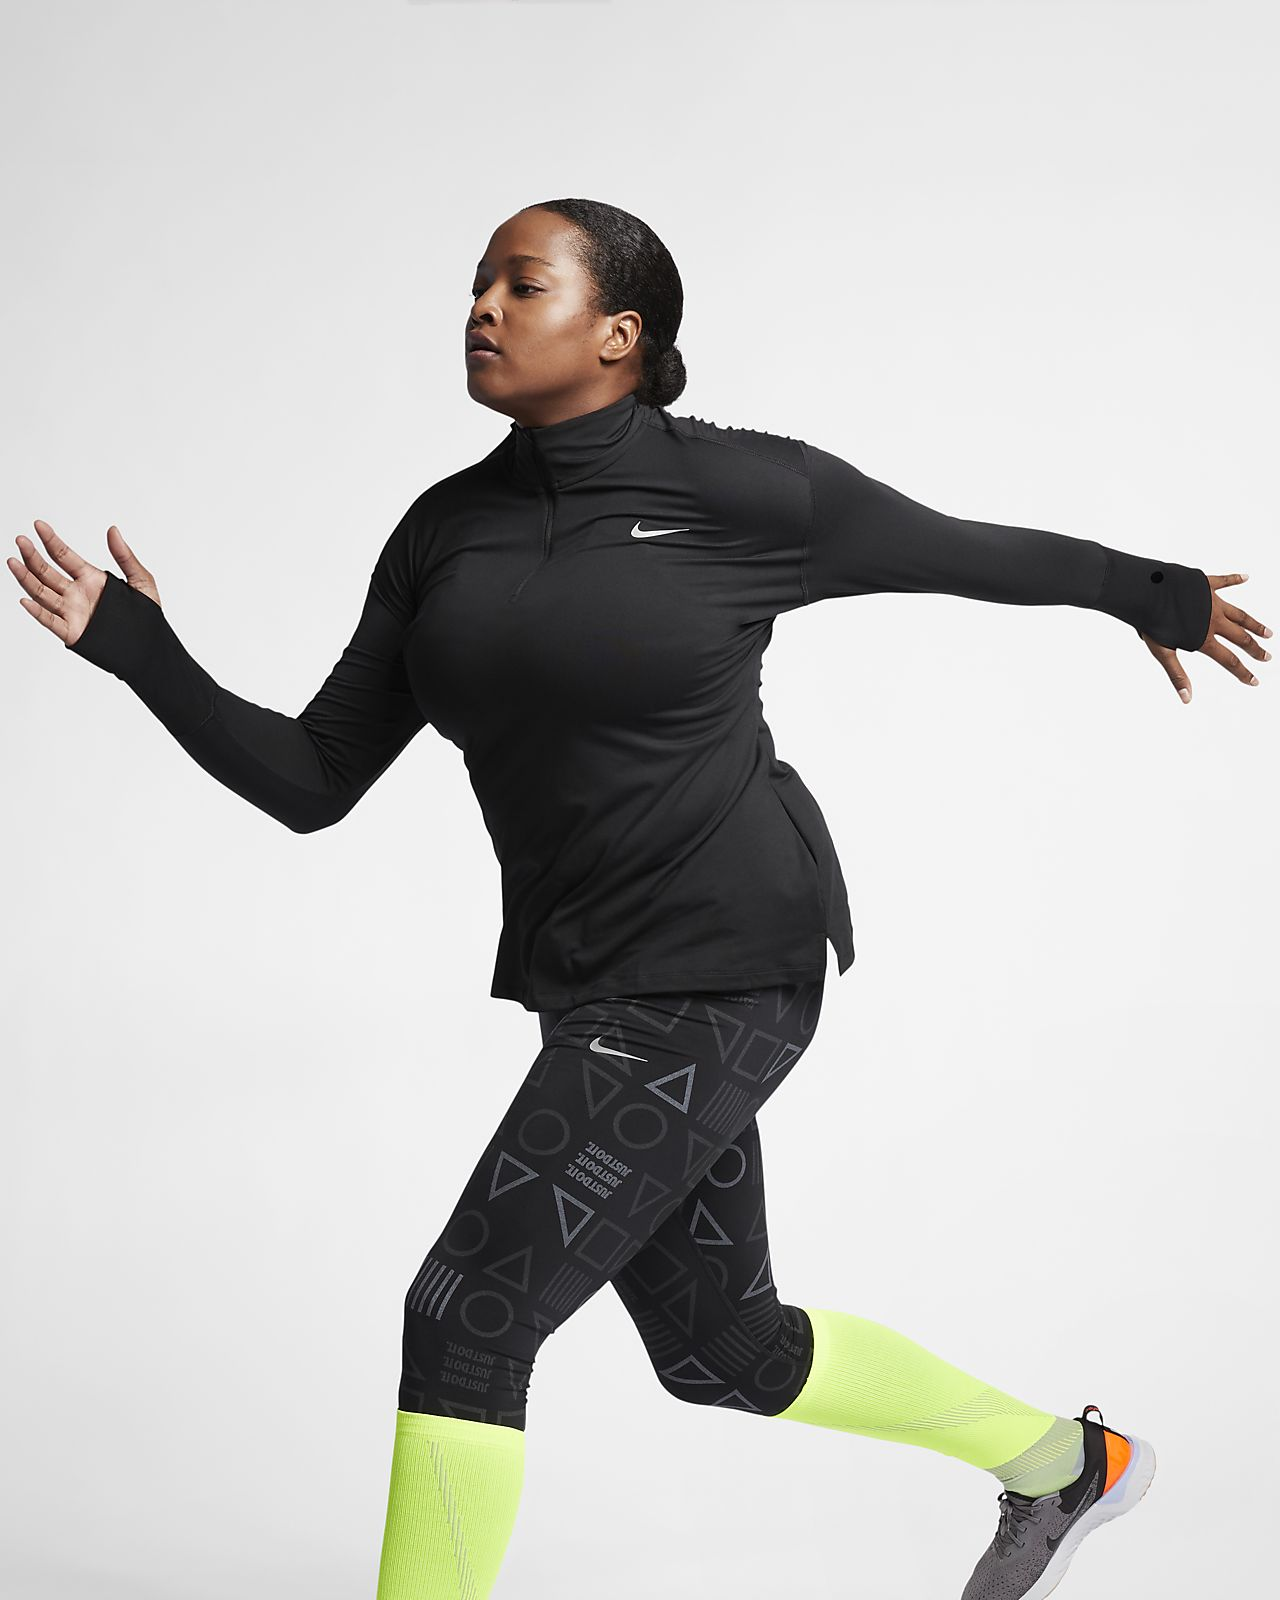 Nike (Plus Size) Women's Half-Zip Running Top